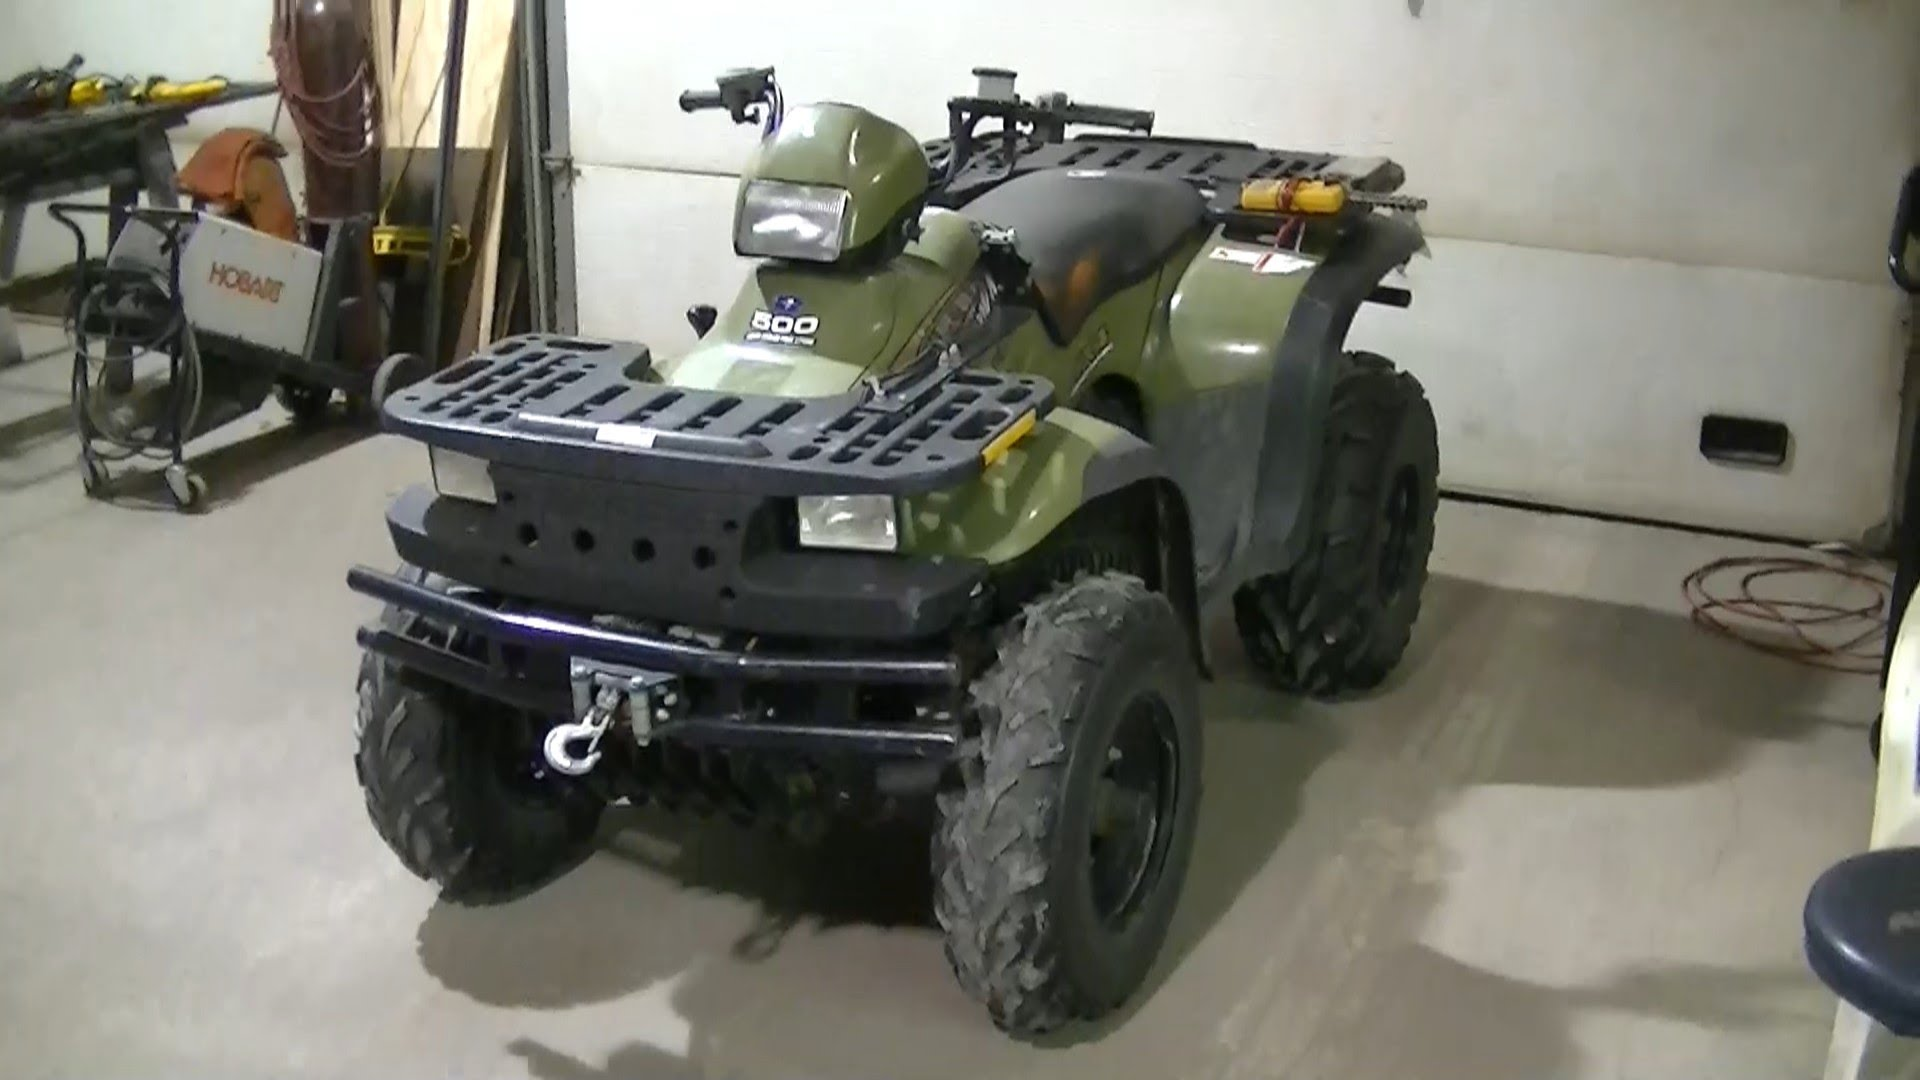 91 Atv Polaris Predator 500 Service Manual 2003 2004 2005